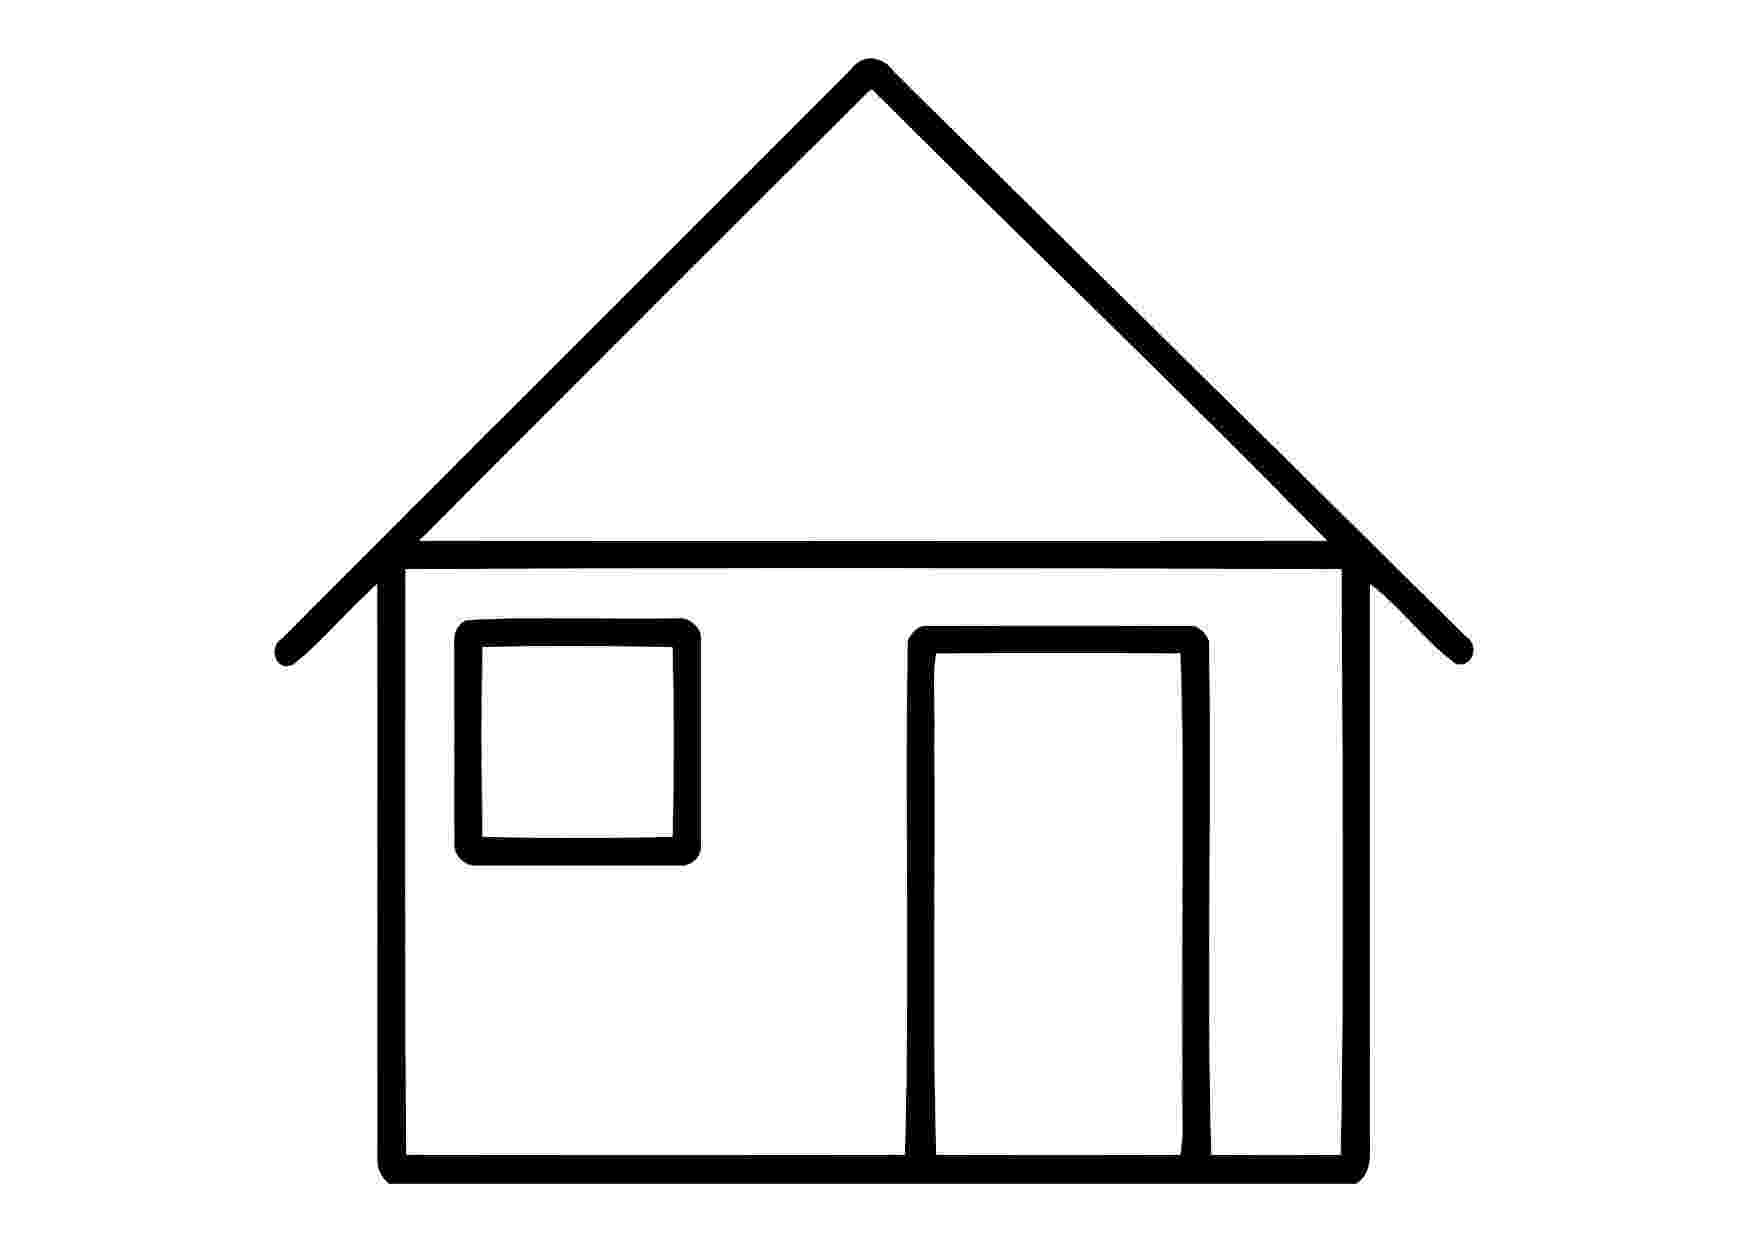 coloring page house printable gingerbread house coloring pages for kids coloring house page